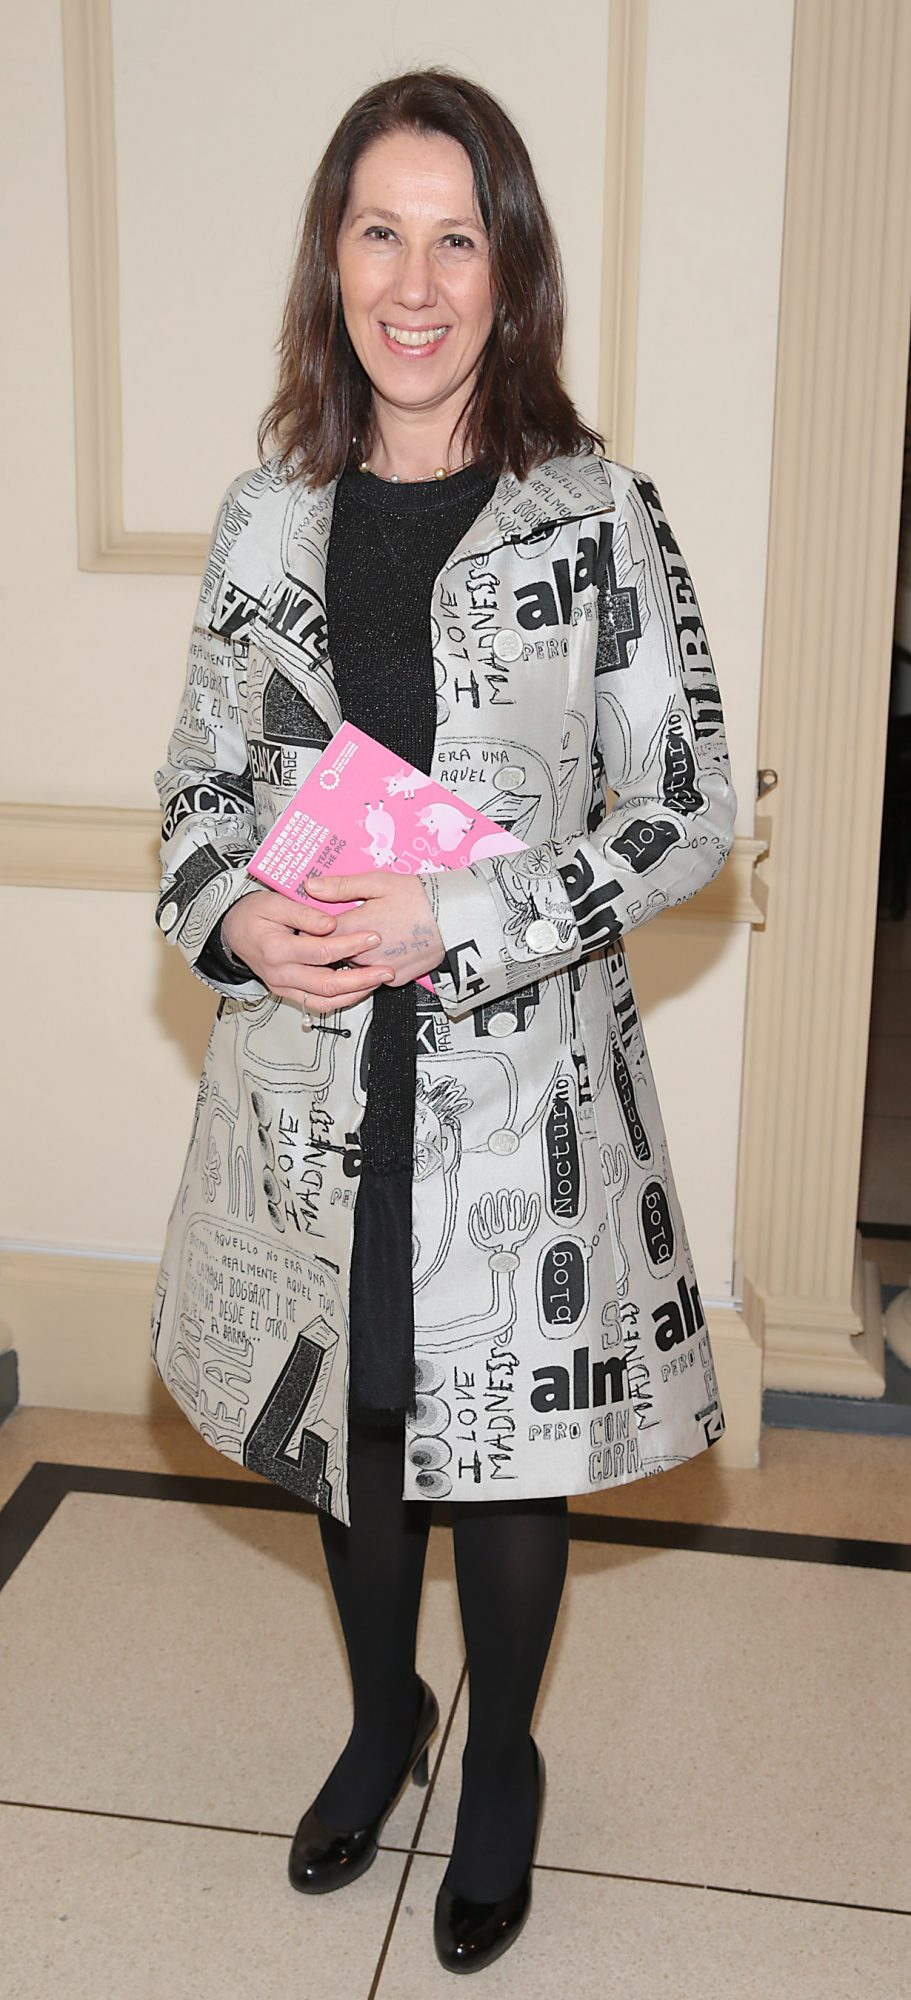 Cllr Alison Gilliland  pictured at the official opening event of Dublin Chinese New Year Festival 2019 at The Hugh Lane Gallery sponsored by Kildare Village. Dublin Chinese New Year Festival runs until 17th February for more see www.dublinchinesenewyear.com   Pic Brian McEvoy